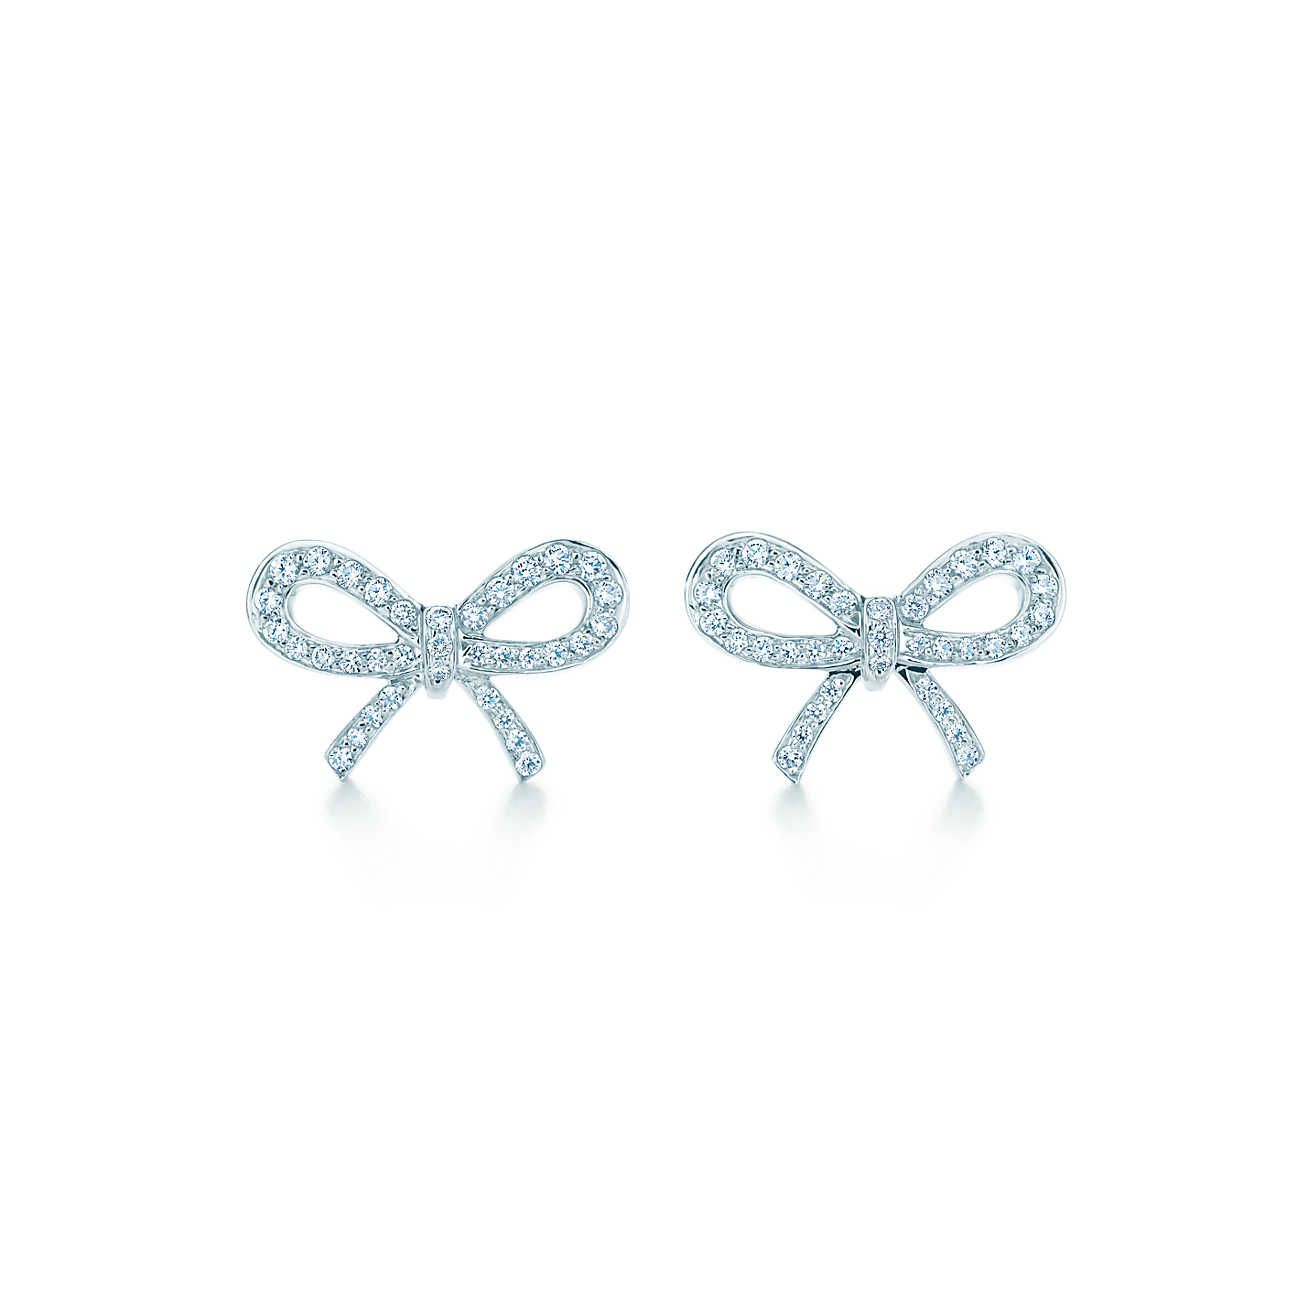 Earrings Accessories Bow Diamond Bows Tiffany